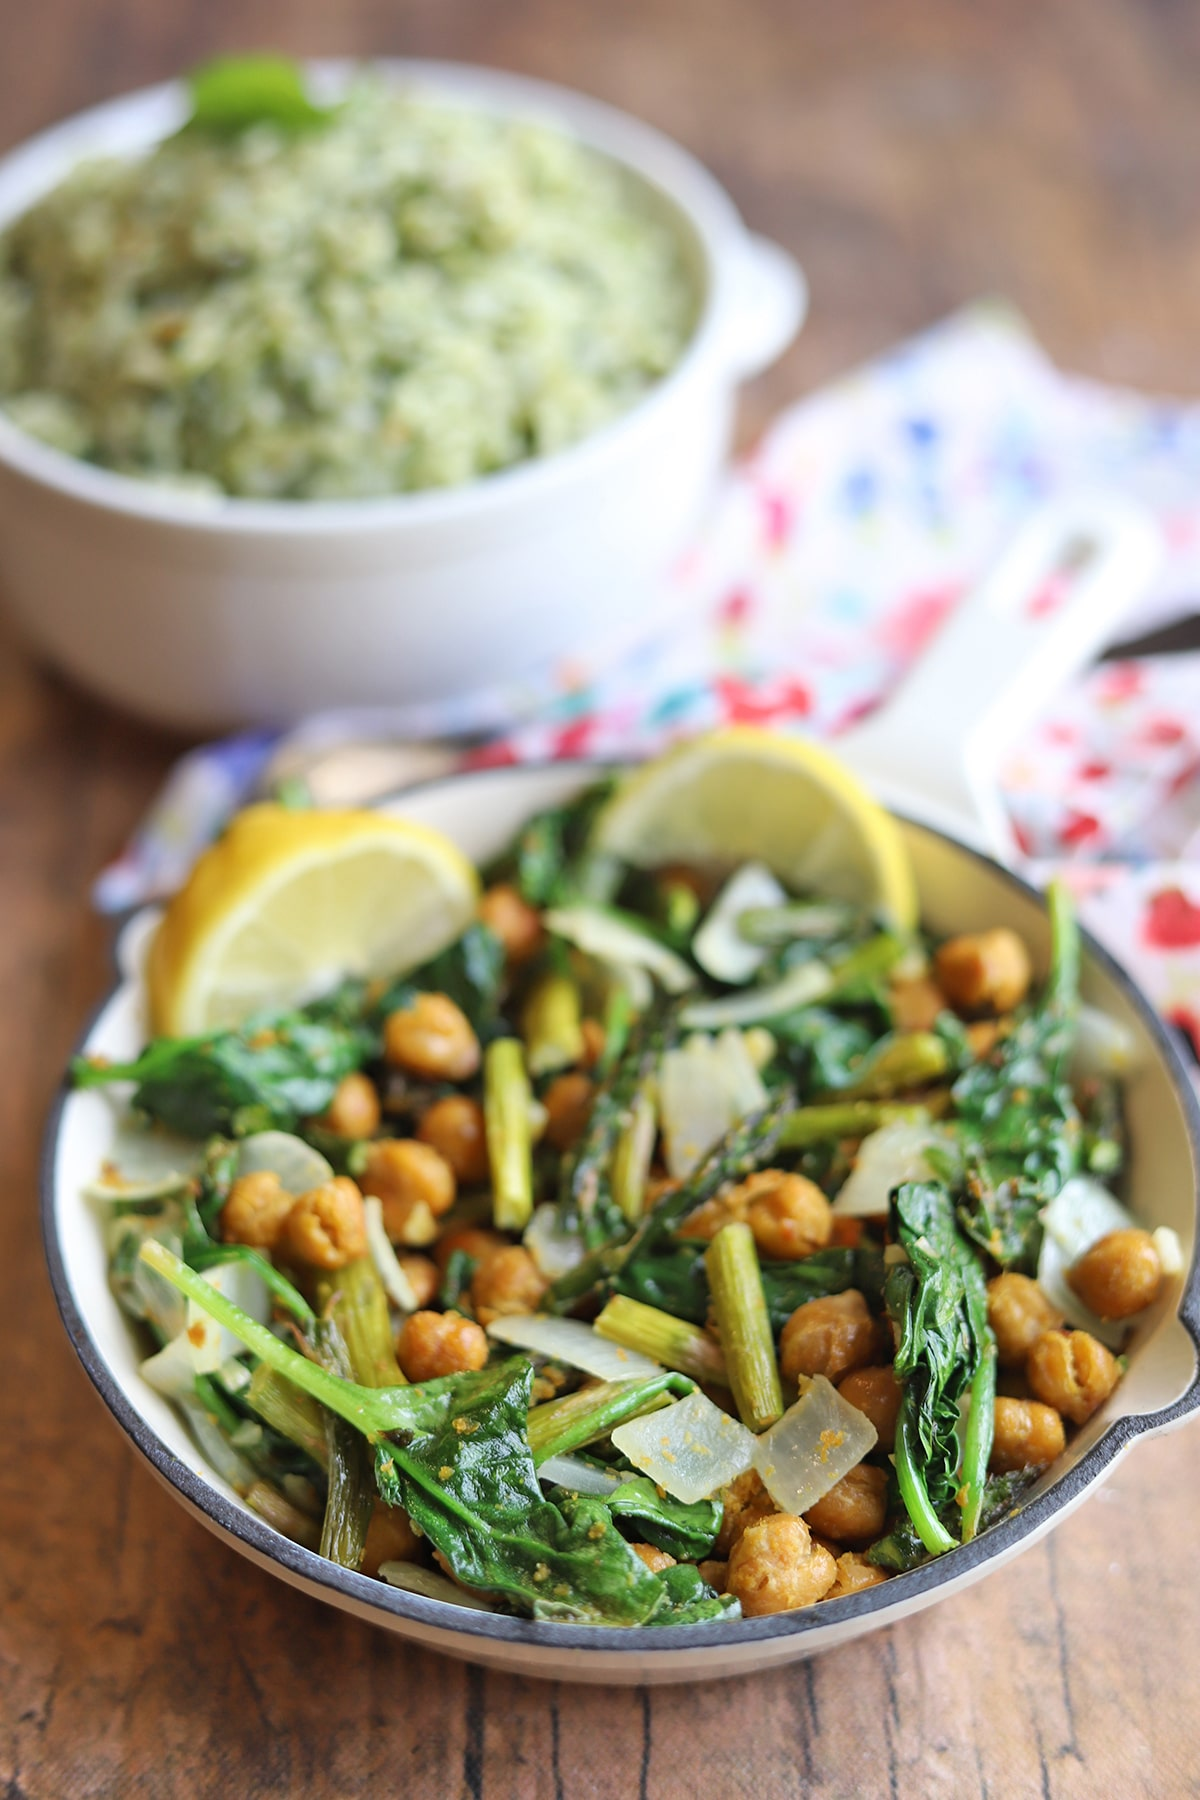 Roasted asparagus in skillet with chickpeas and spinach. Pesto rice on side.